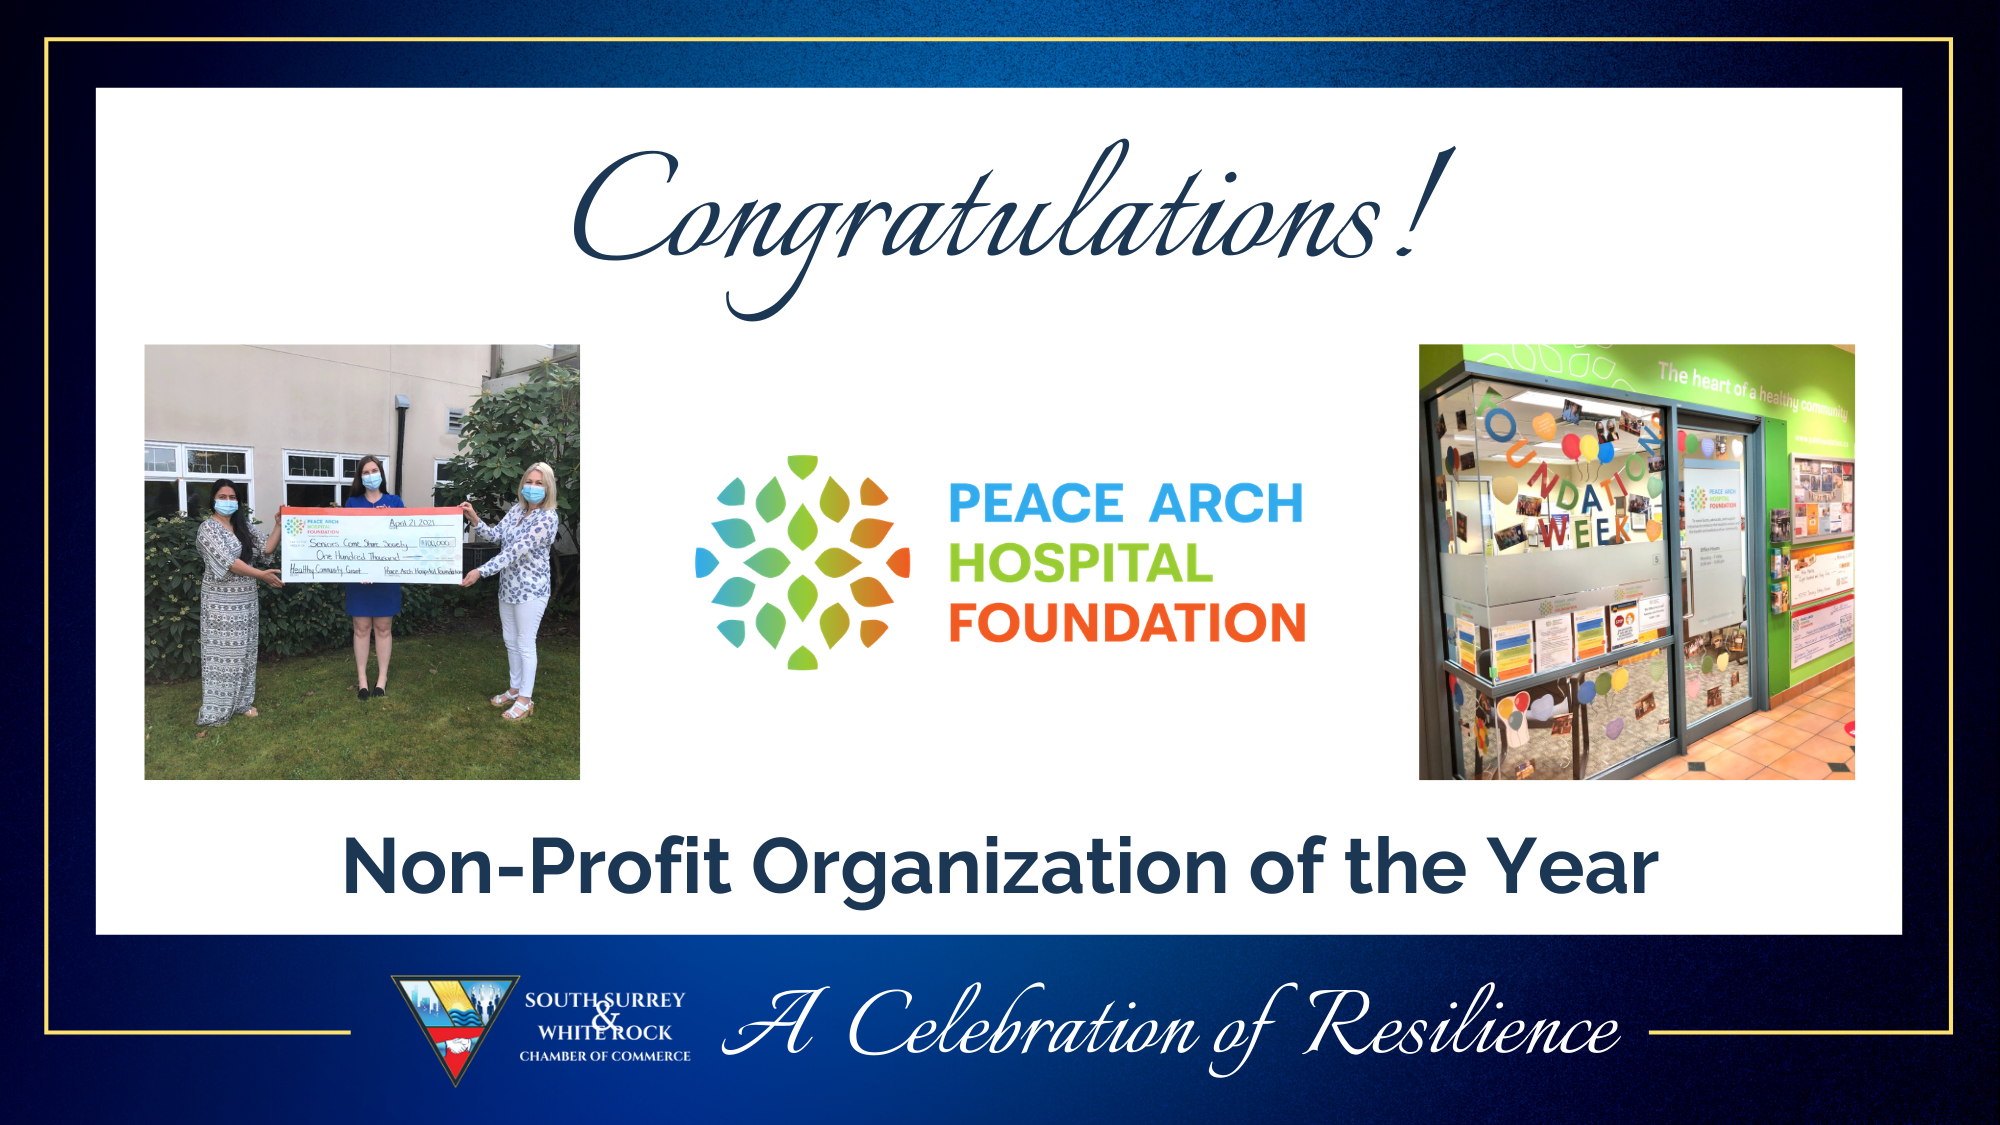 Congratulations-Non-Profit-Organization-of-the-Year.png